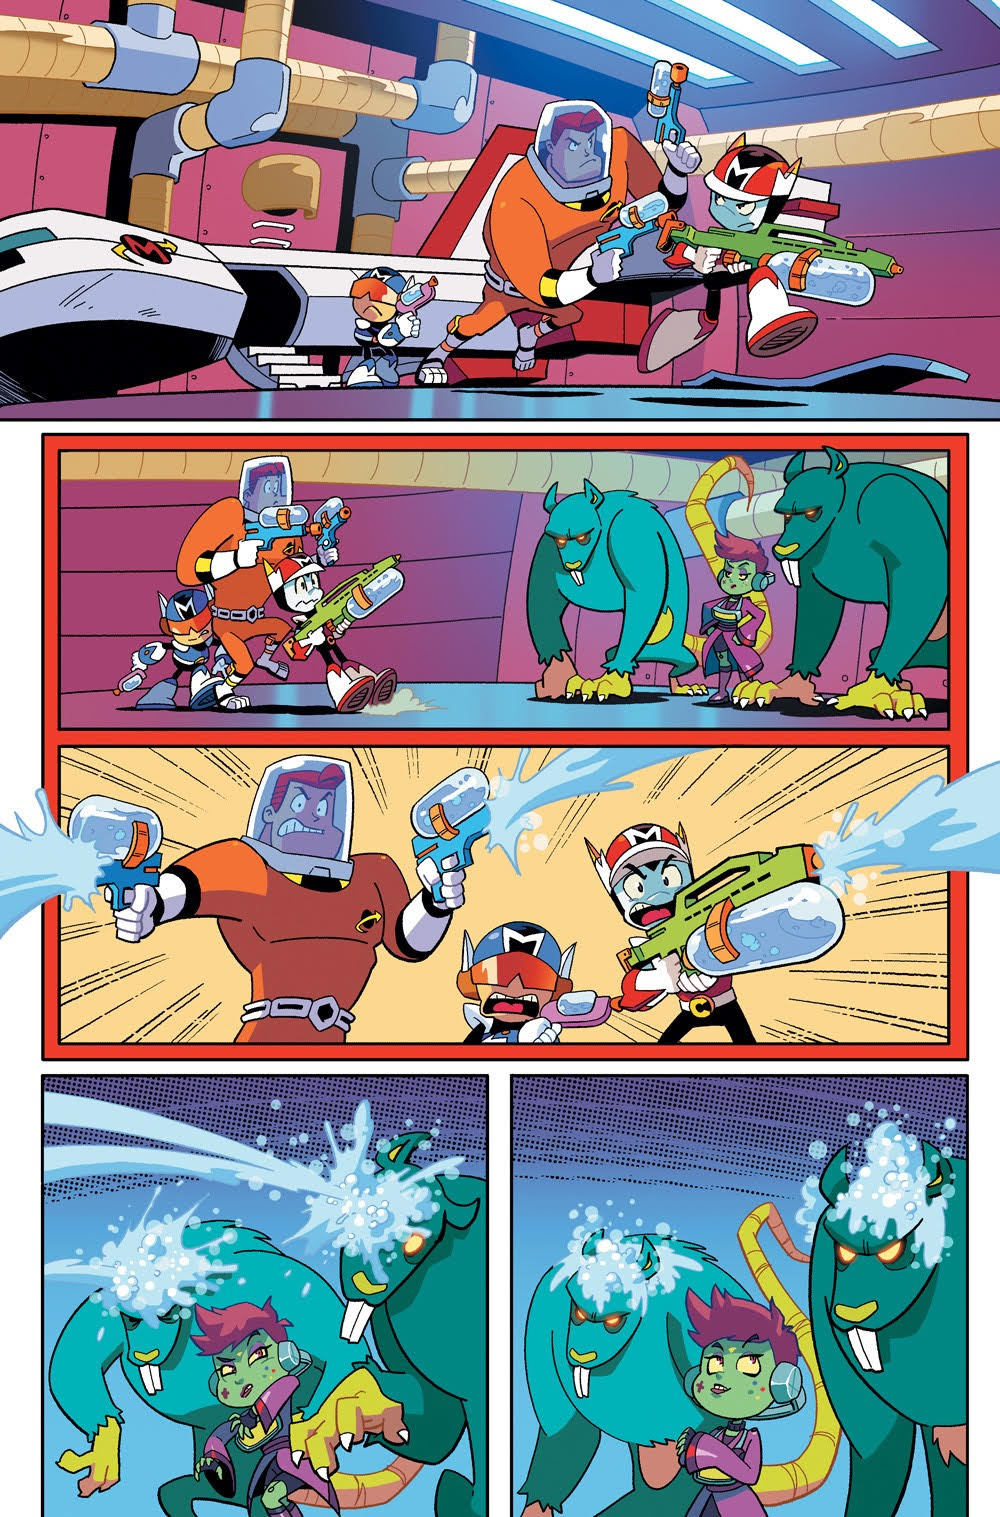 Cosmo the Mighty Martian: Page 9, Going to defeat the Shih.